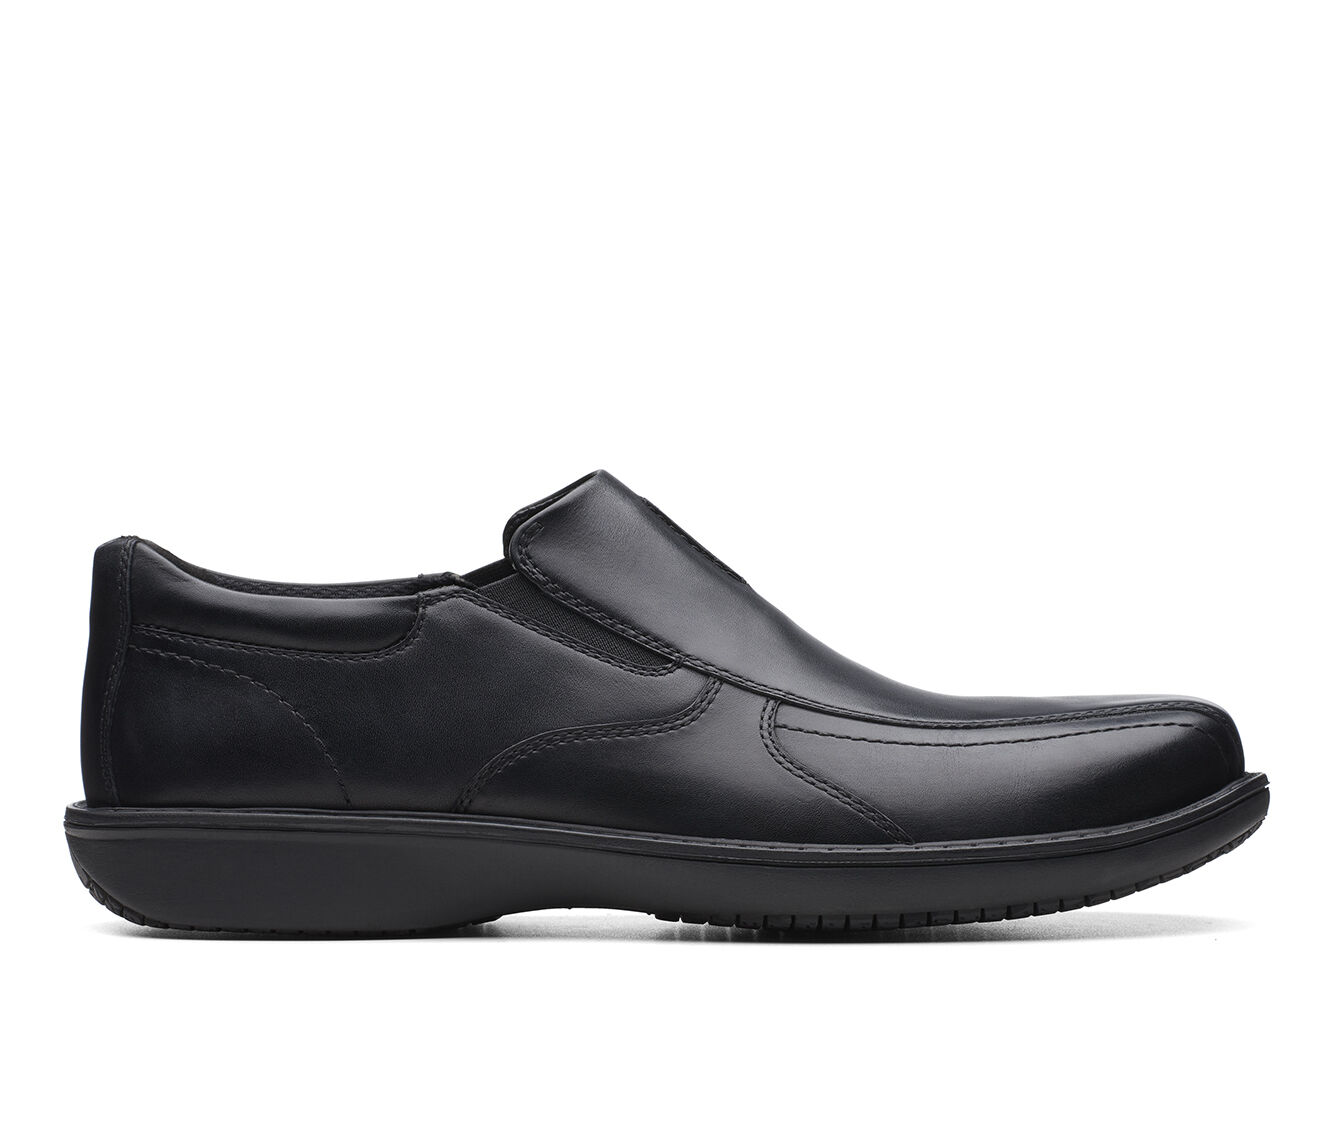 Men's Clarks Wader Twin Dress Shoes Black